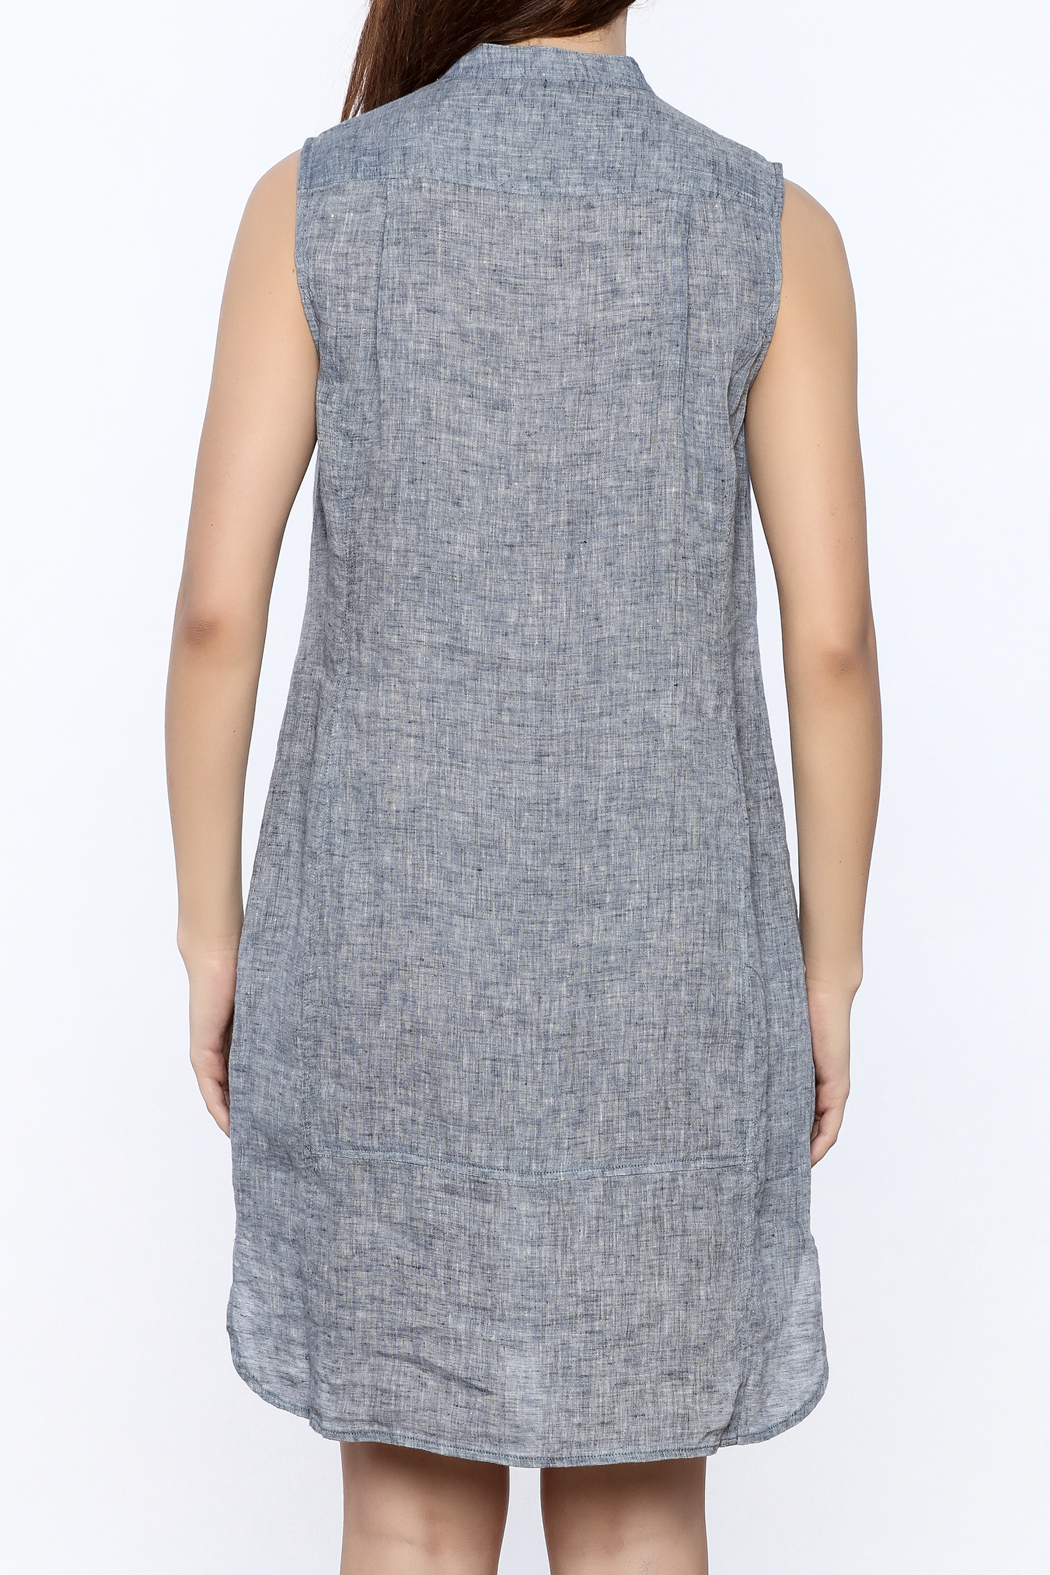 Nic + Zoe Sleeveless Linen Dress - Back Cropped Image